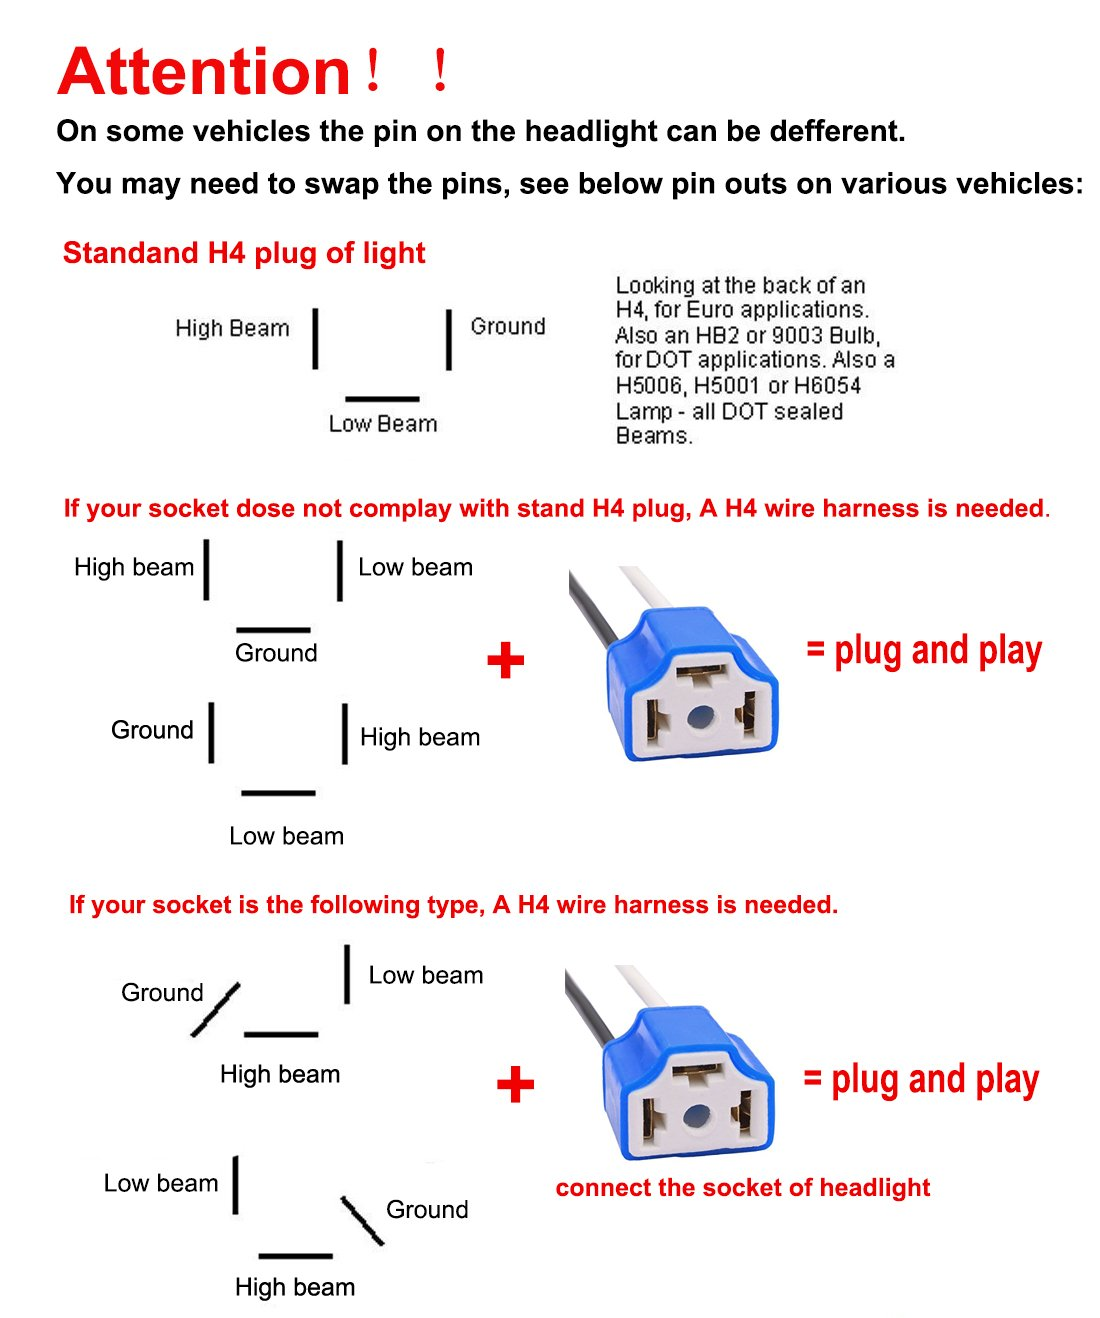 h6054 headlight wiring diagram   30 wiring diagram images